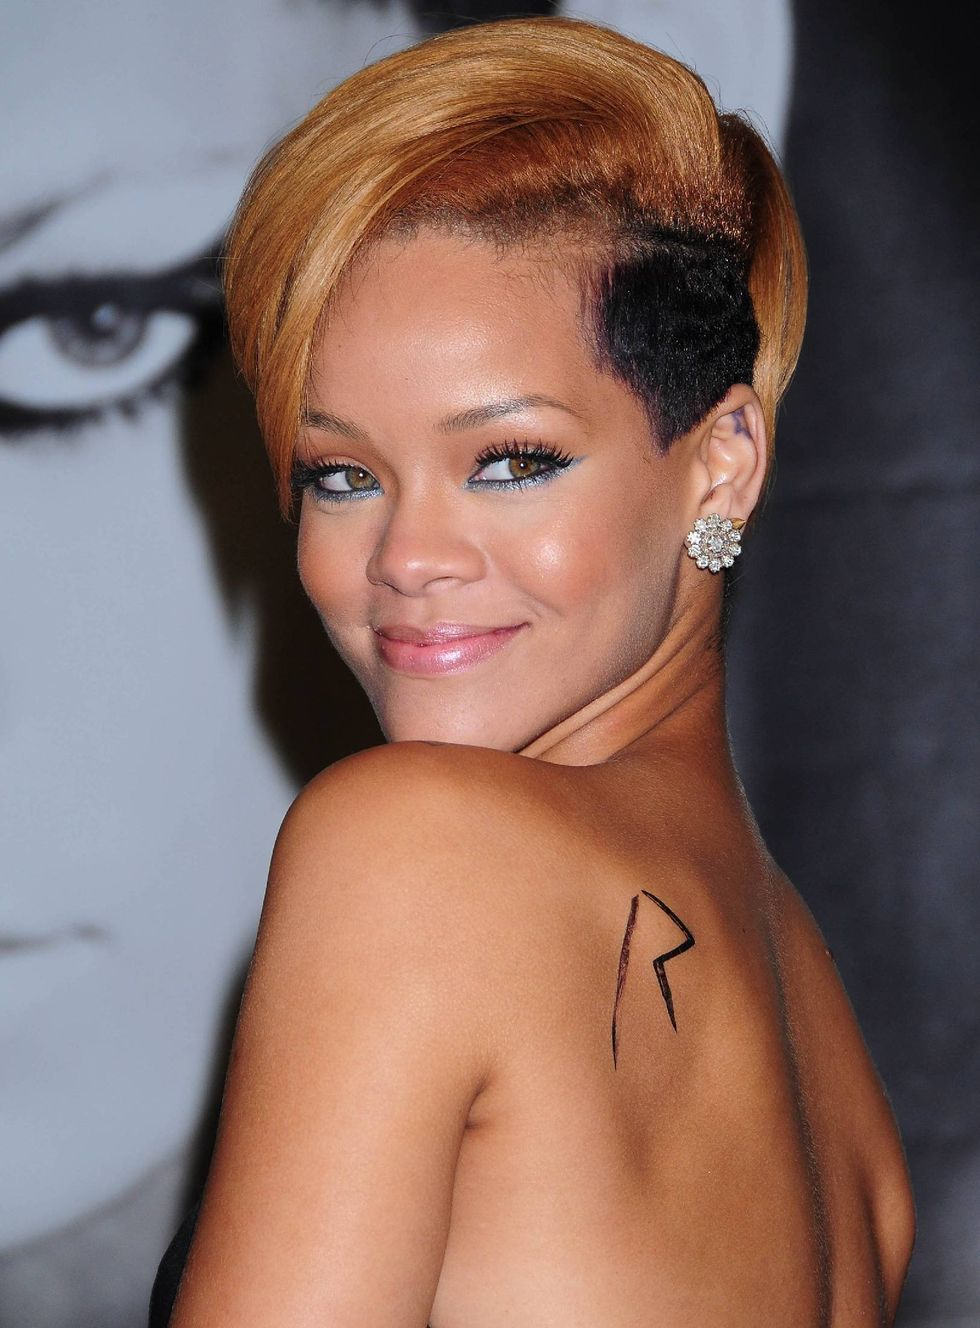 rihanna-rated-r-album-promotion-at-best-buy-01